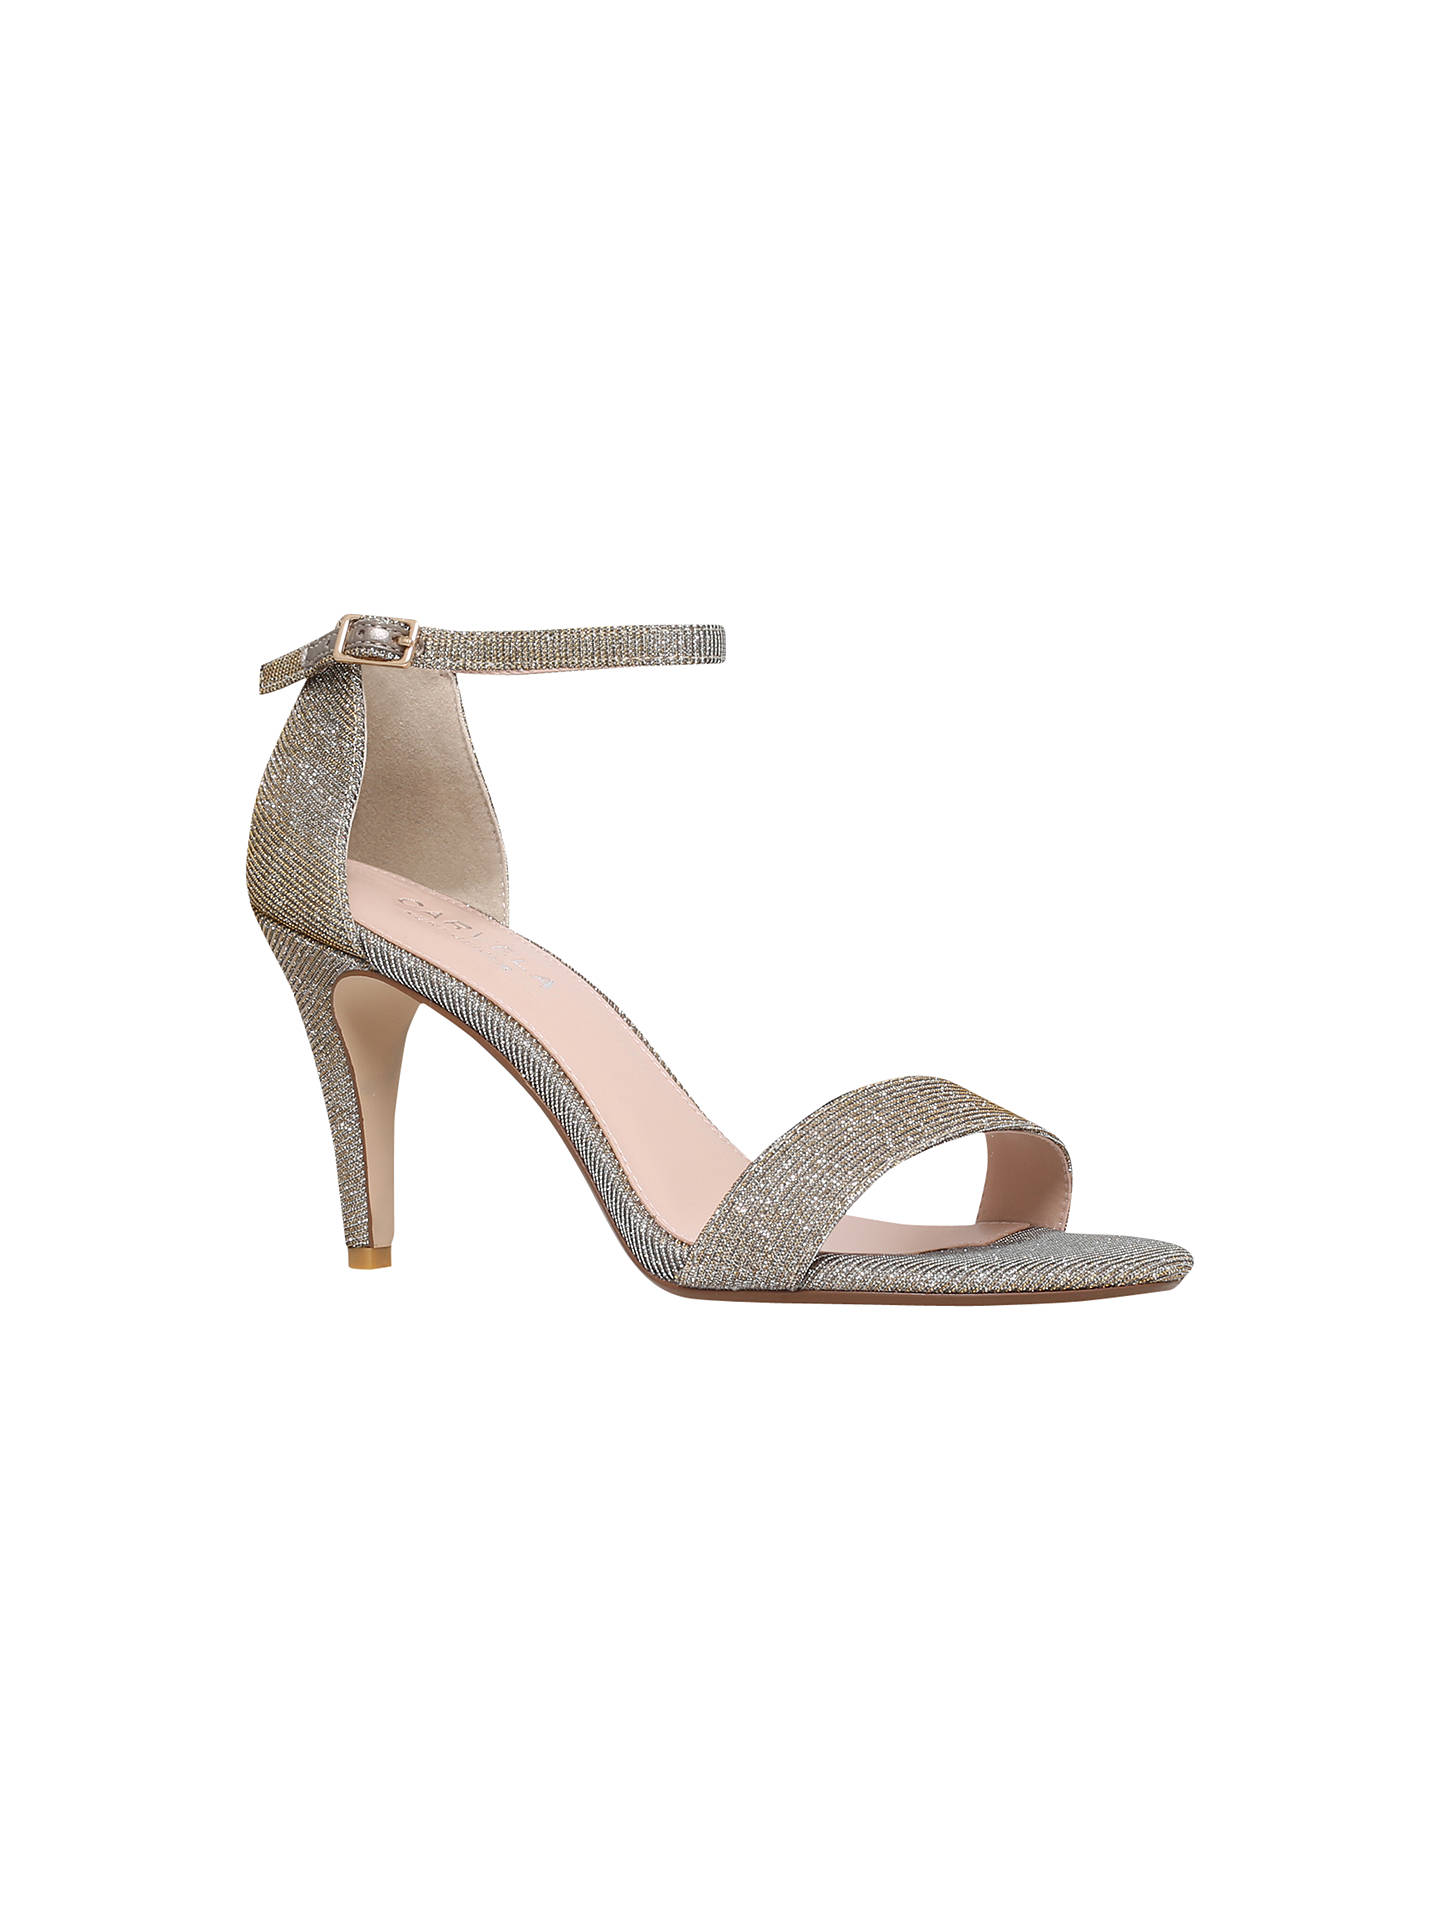 a385f6cd6 Buy Carvela Kiwi Barely There High Heel Sandals